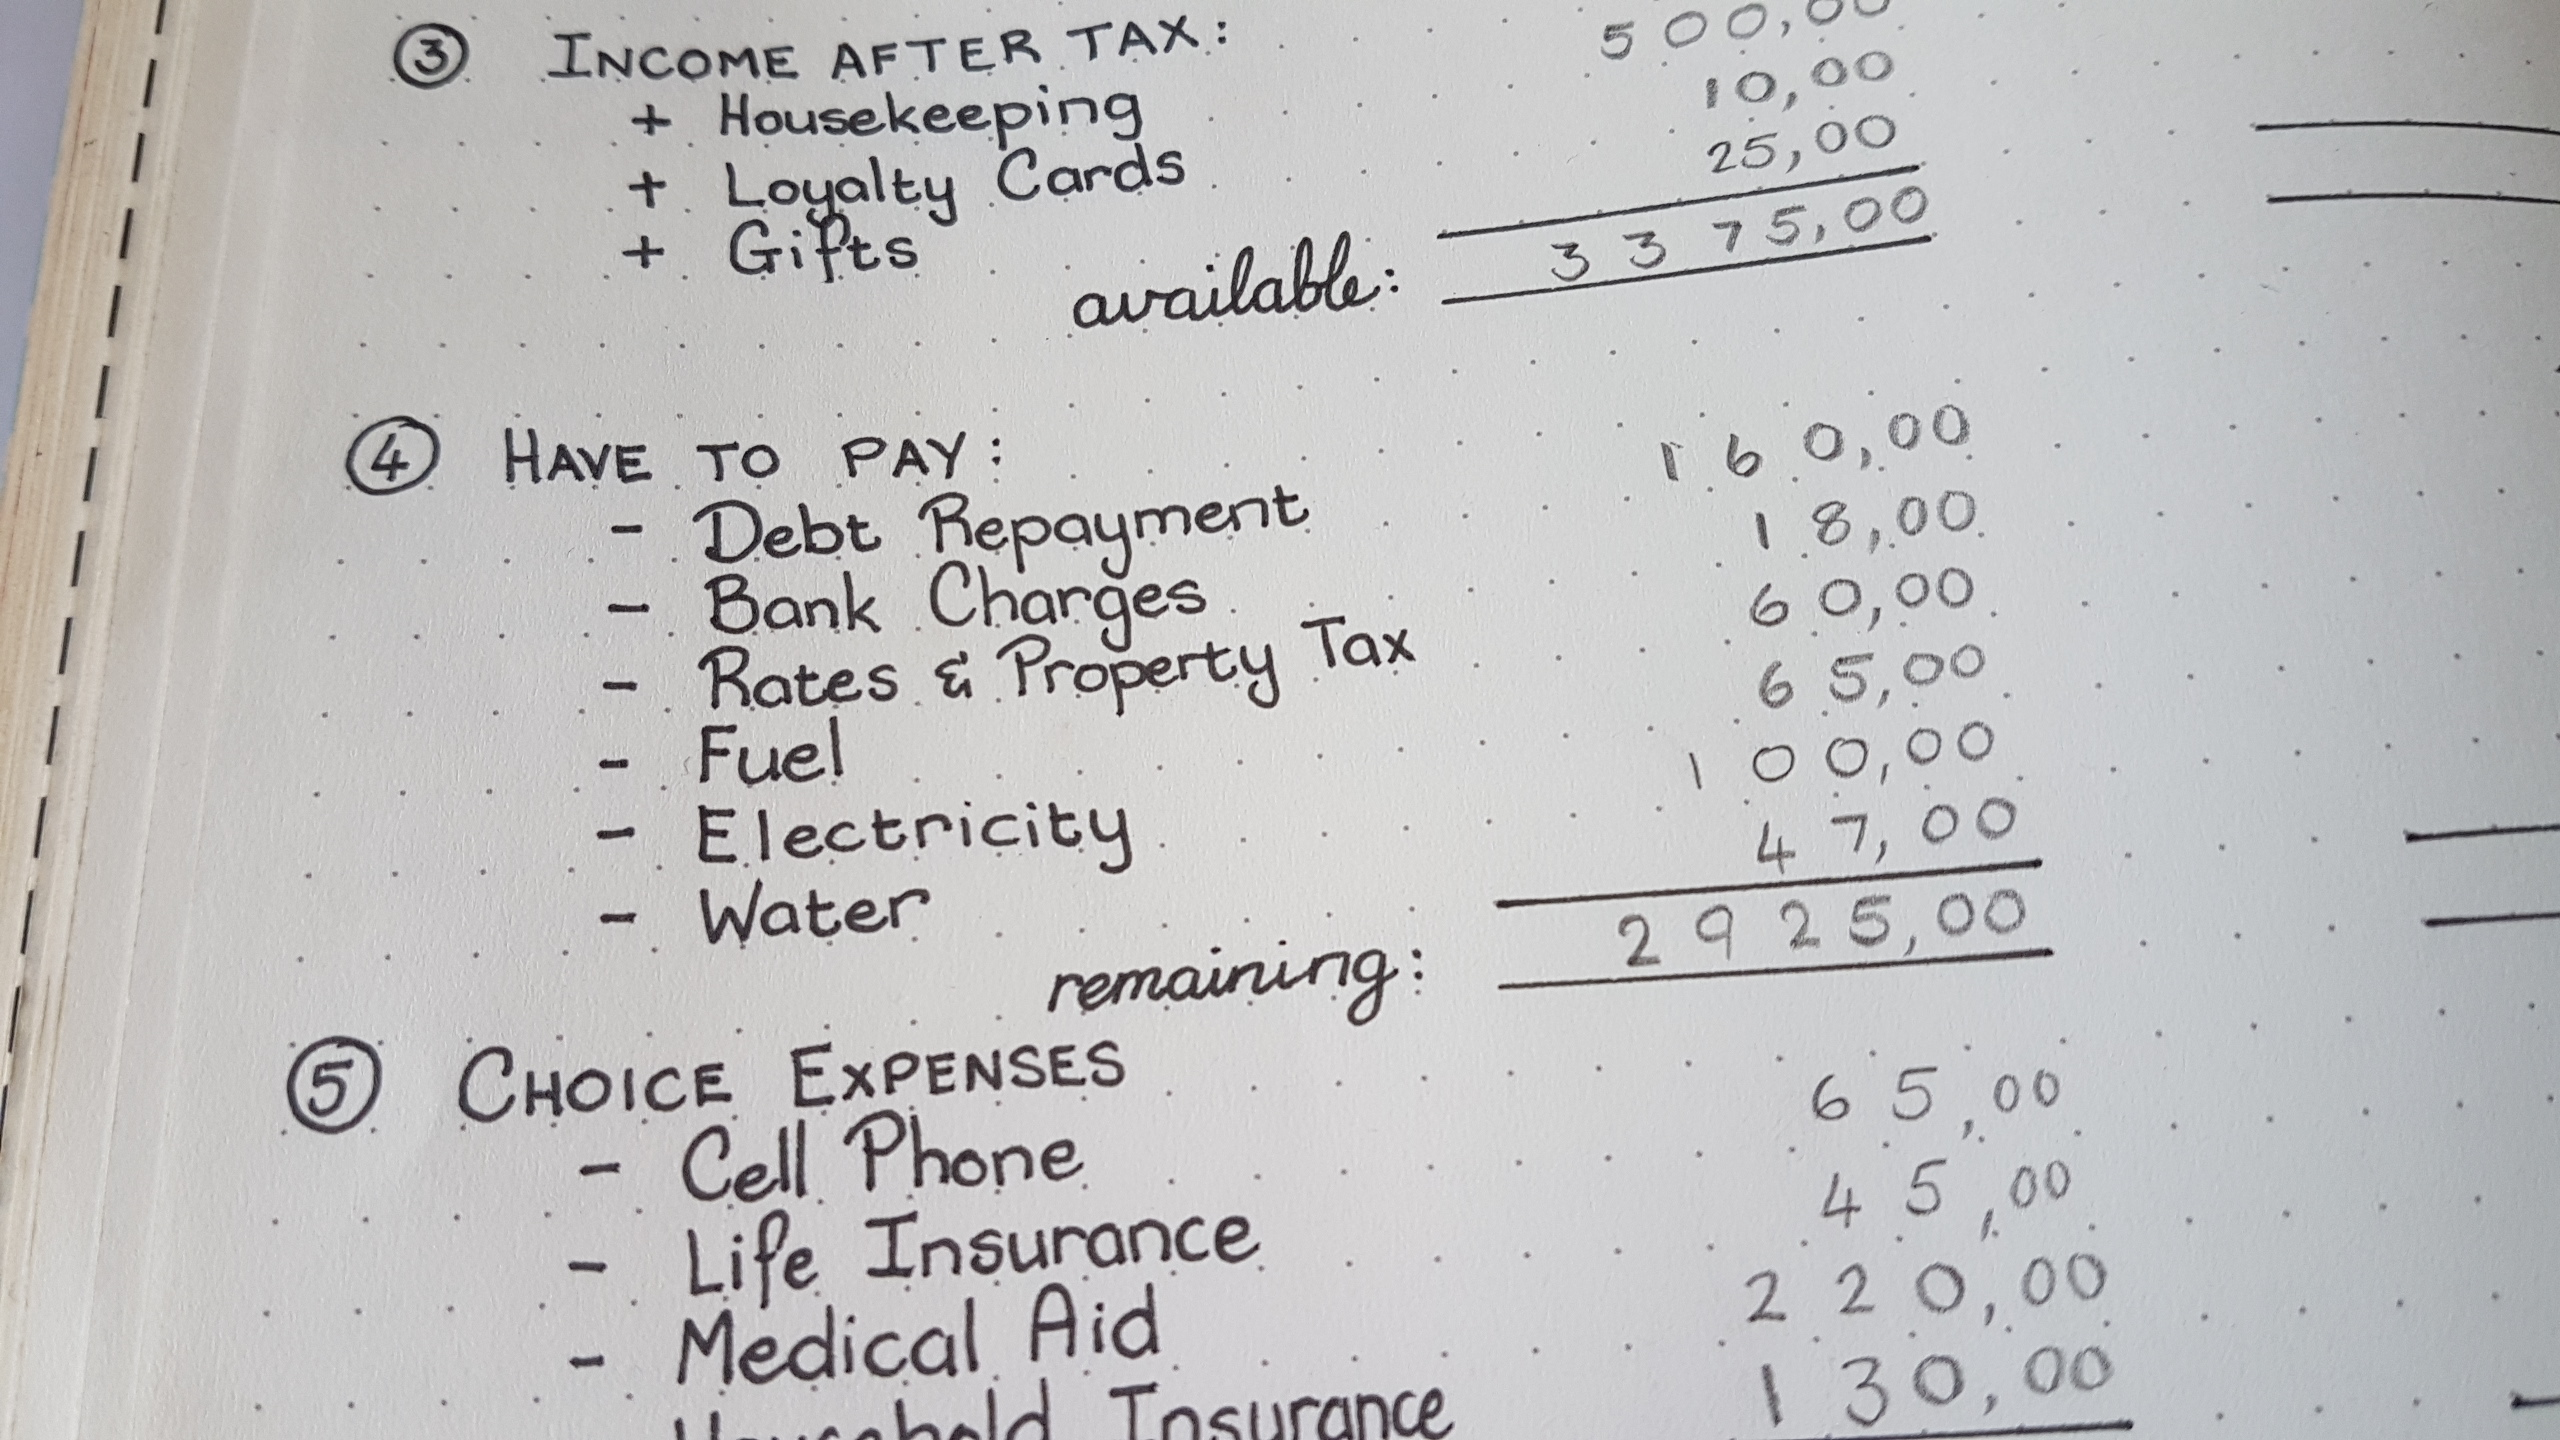 Personal Budget: Have to pay expenses